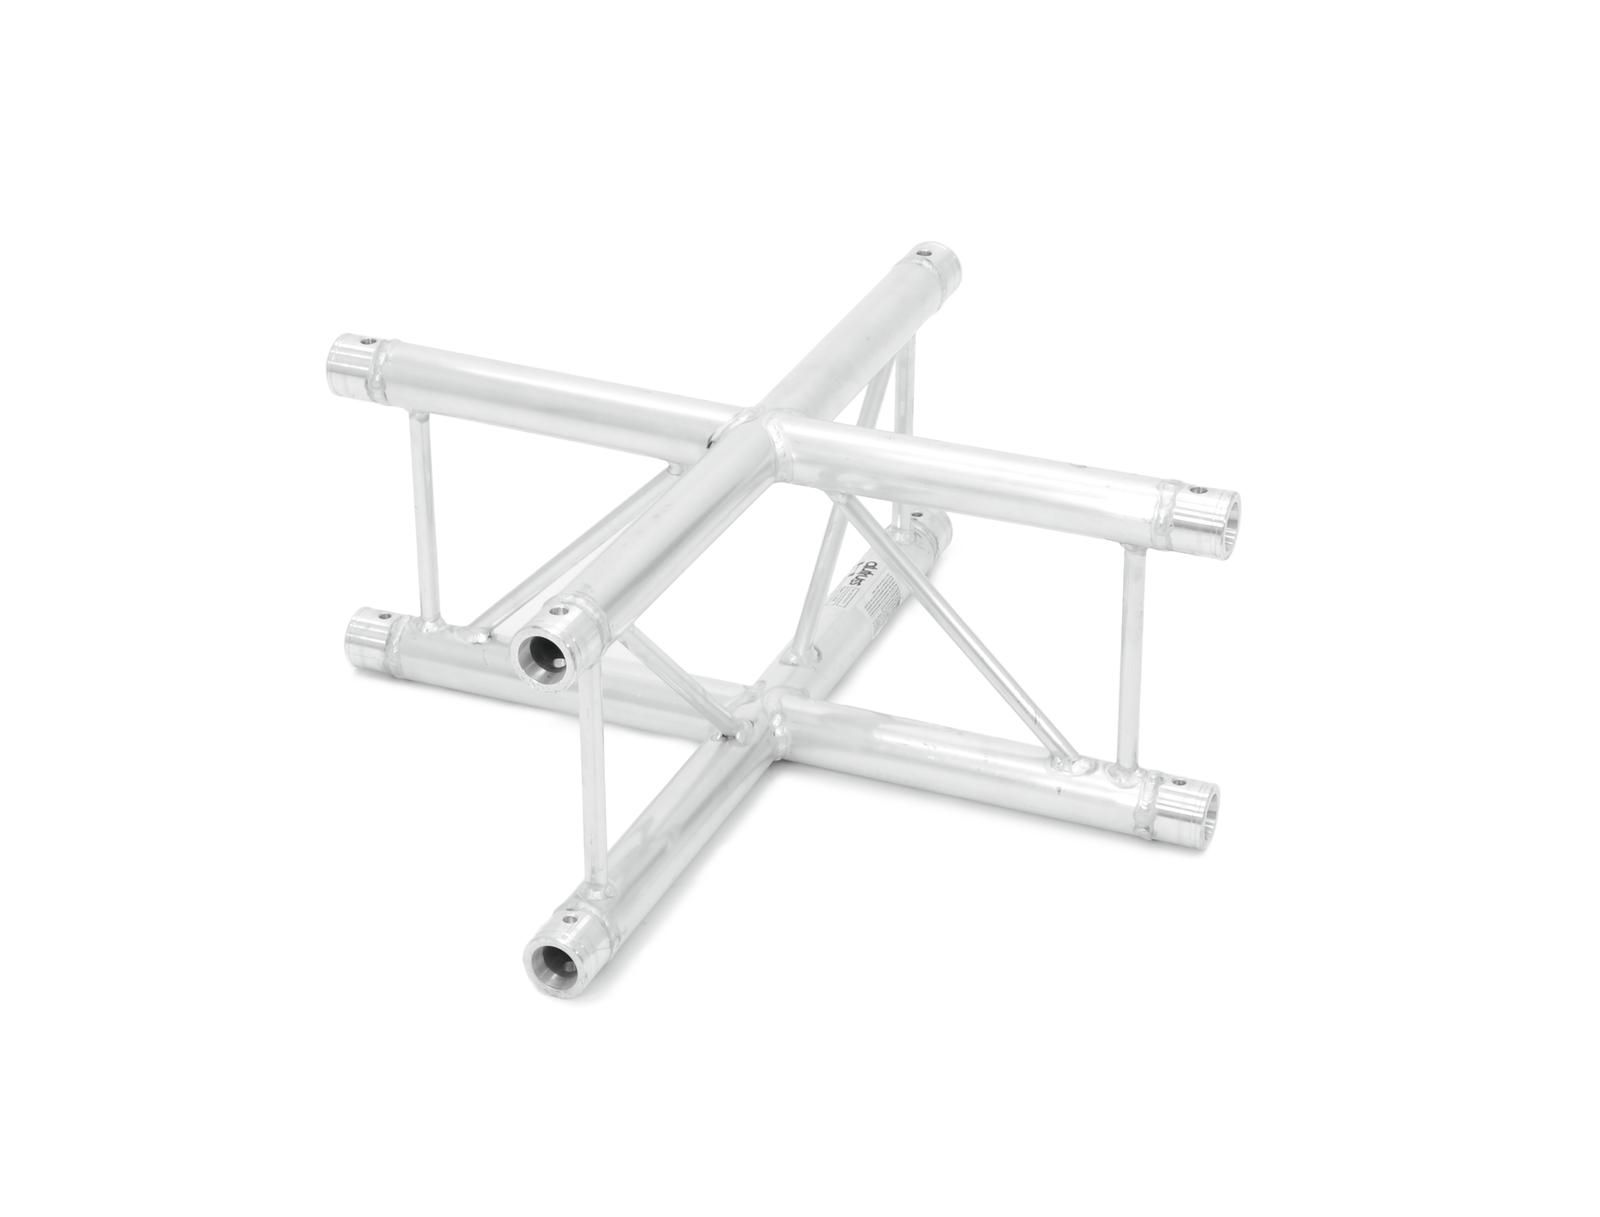 ALUTRUSS BILOCK E-GL22 C41-V 4-Via Croce